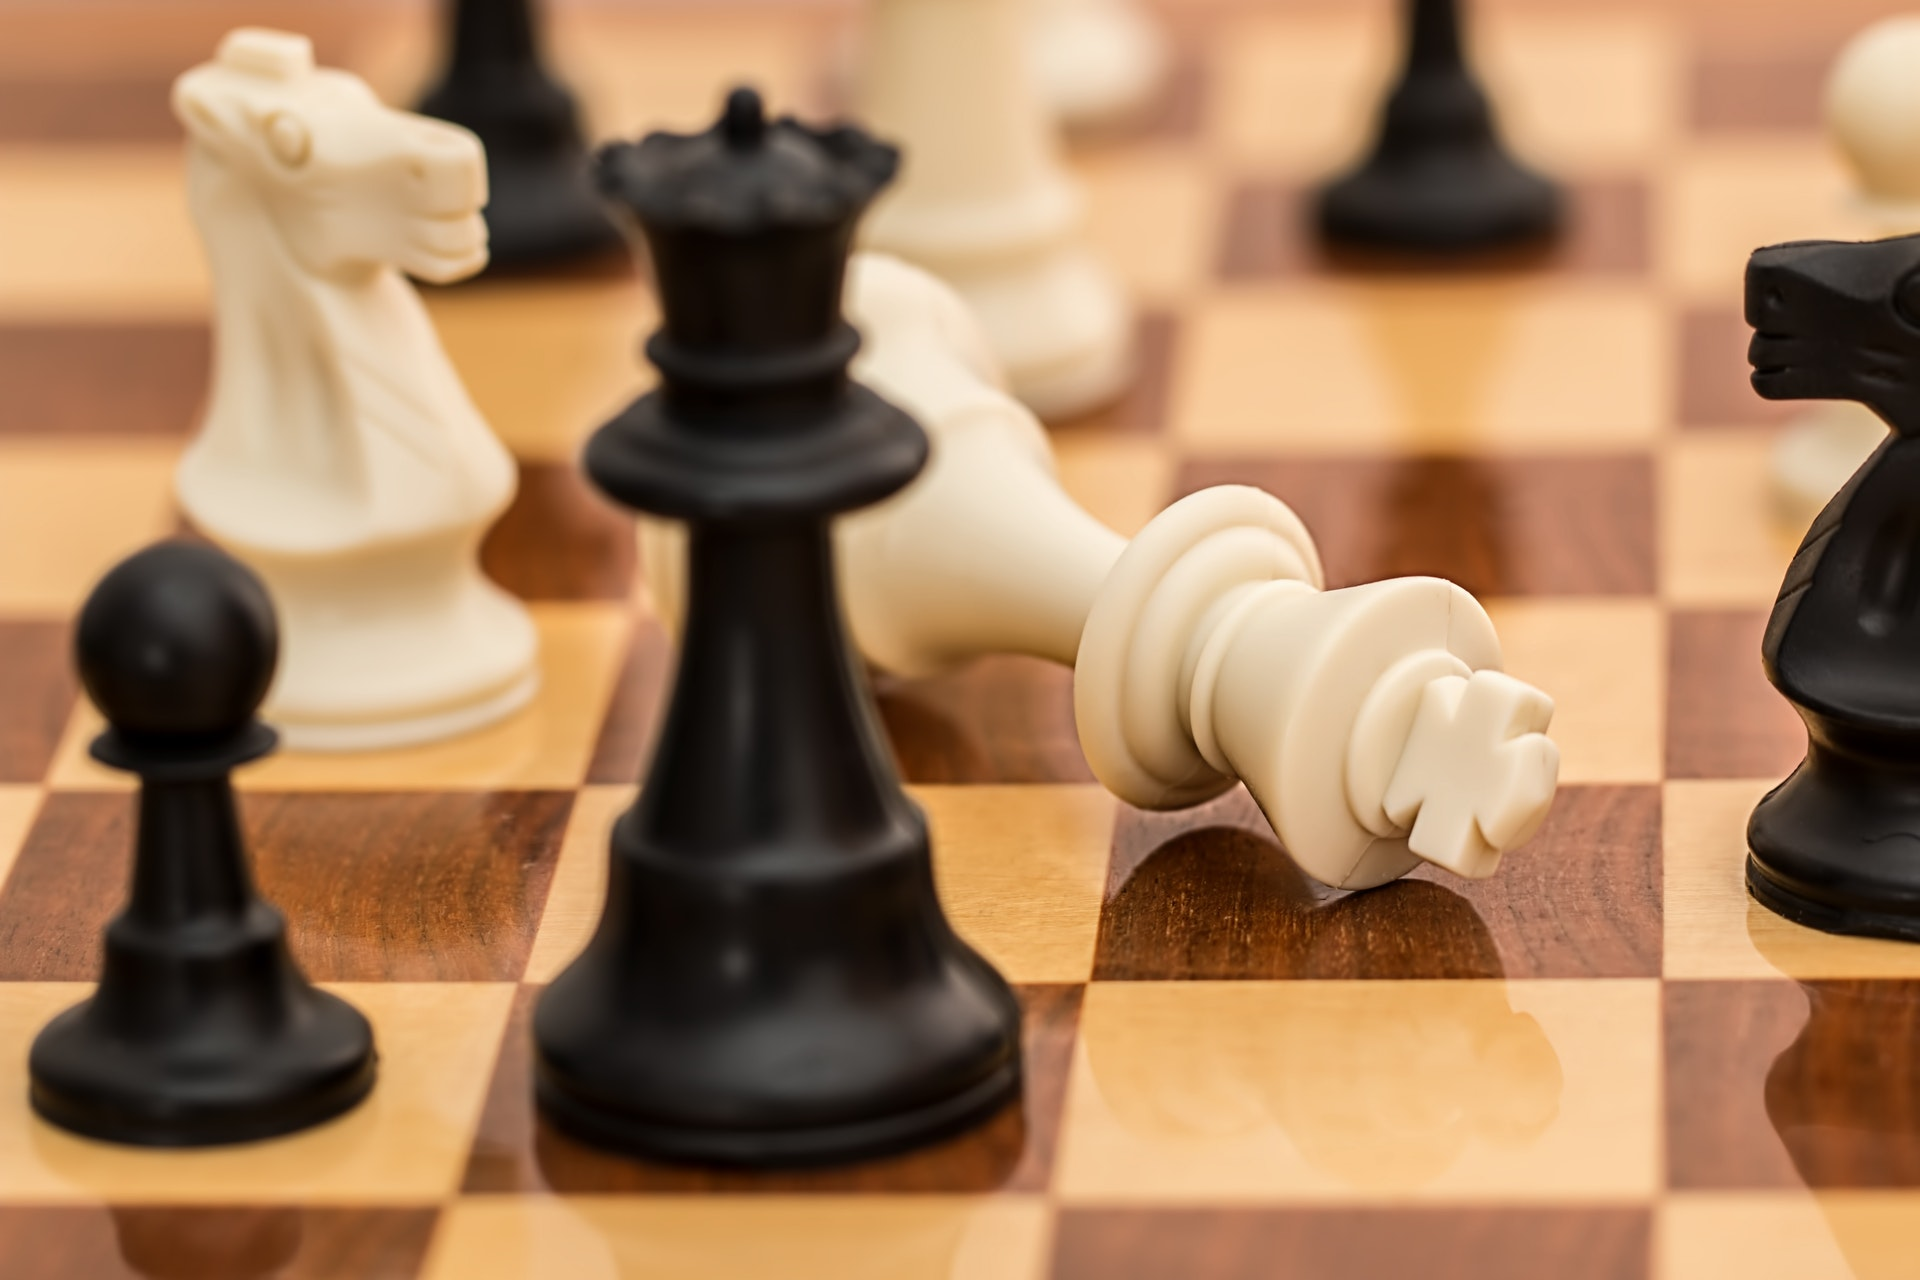 Netflix's The Queen's Gambit Sparks Fresh Interest For Chess